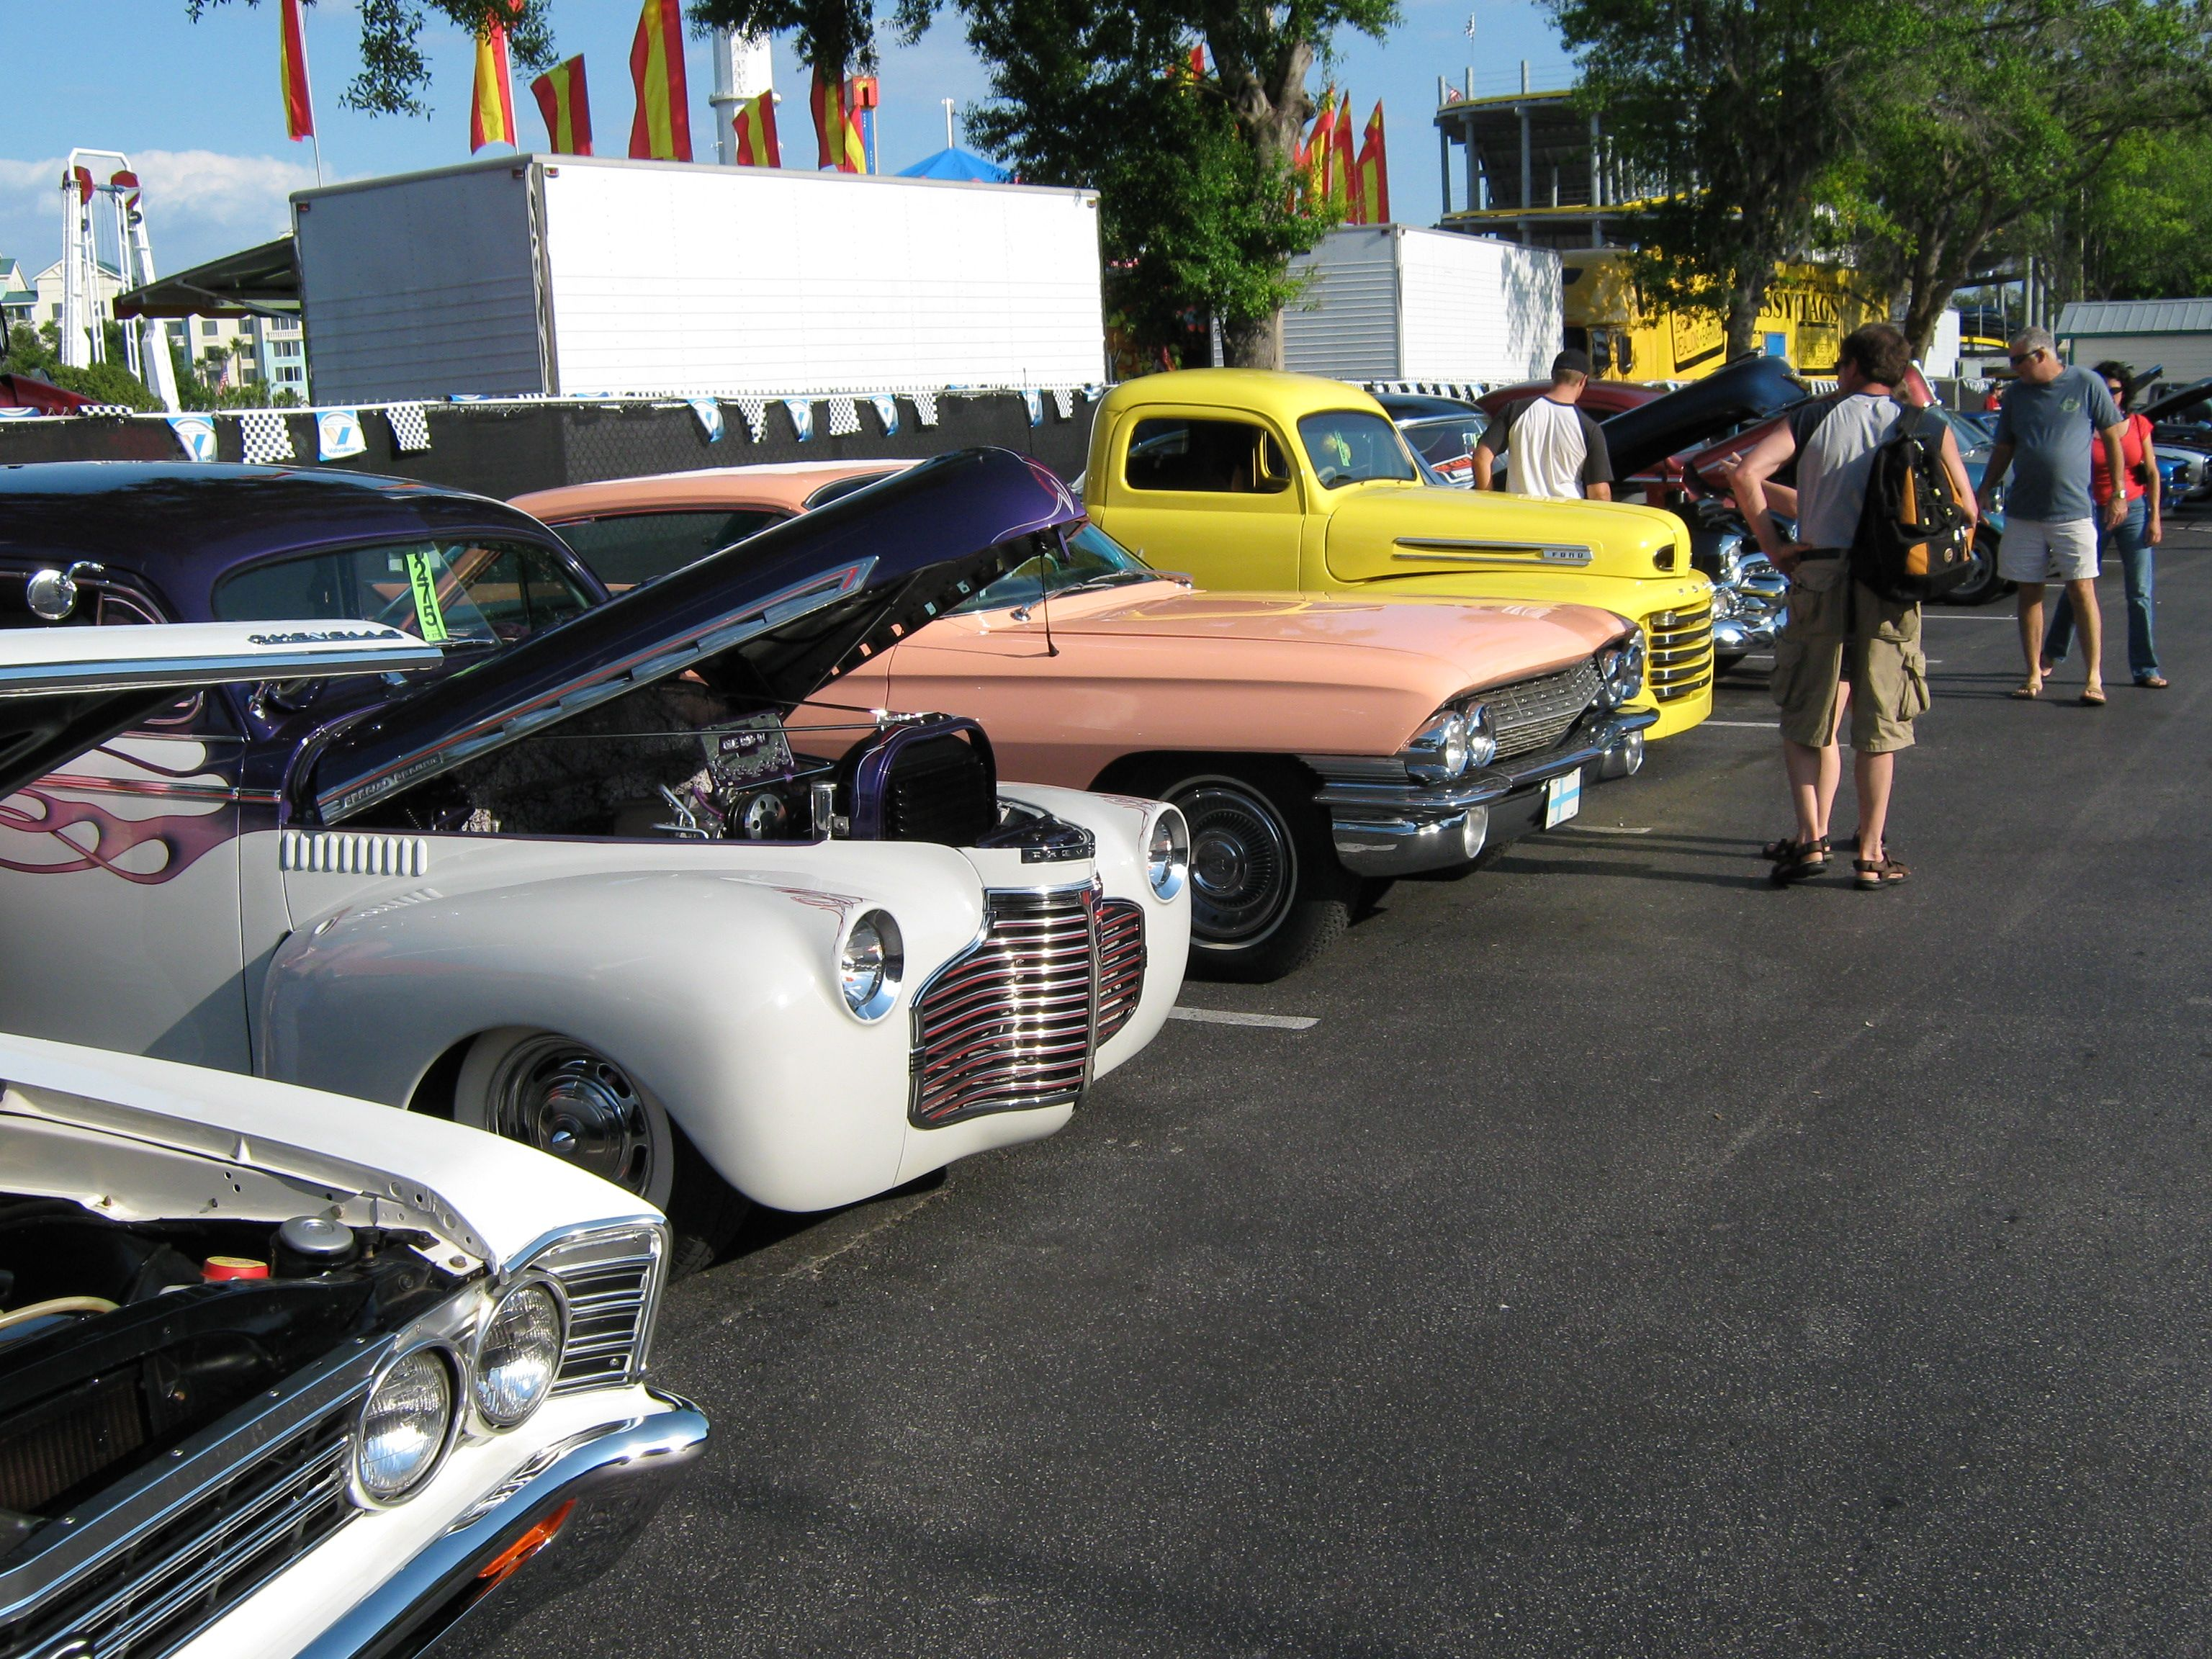 A row of cars at the old town saturday night cruise car show in kissimmee